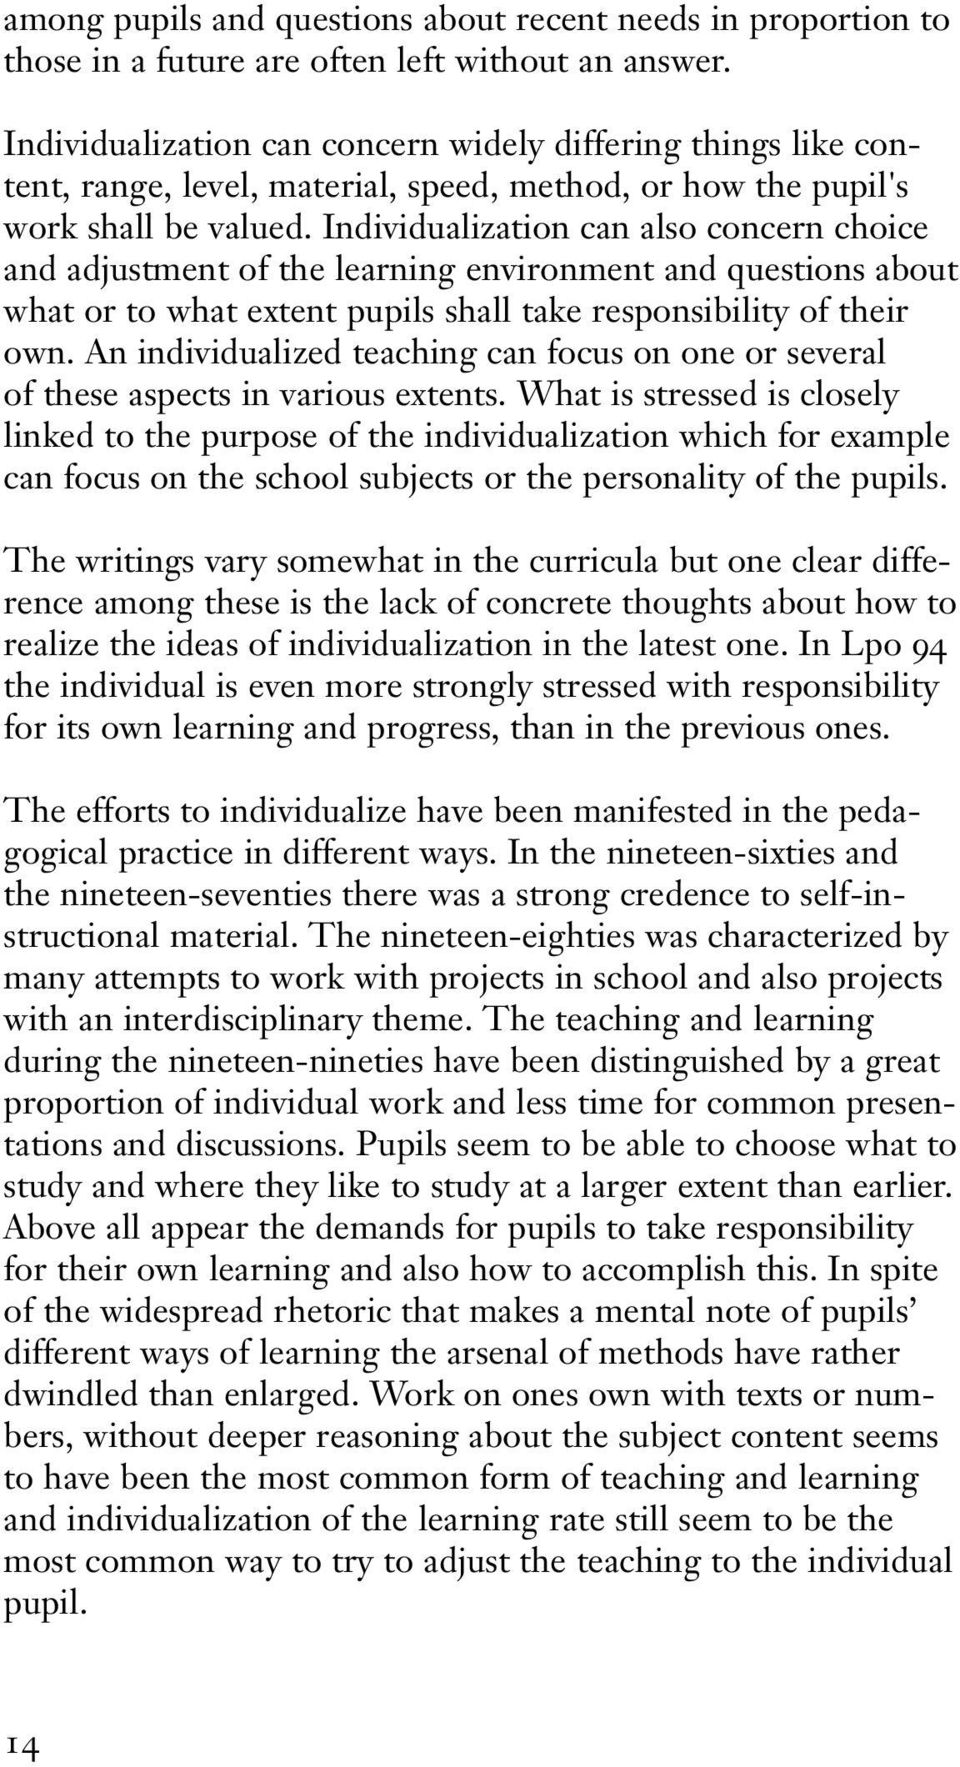 Individualization can also concern choice and adjustment of the learning environment and questions about what or to what extent pupils shall take responsibility of their own.